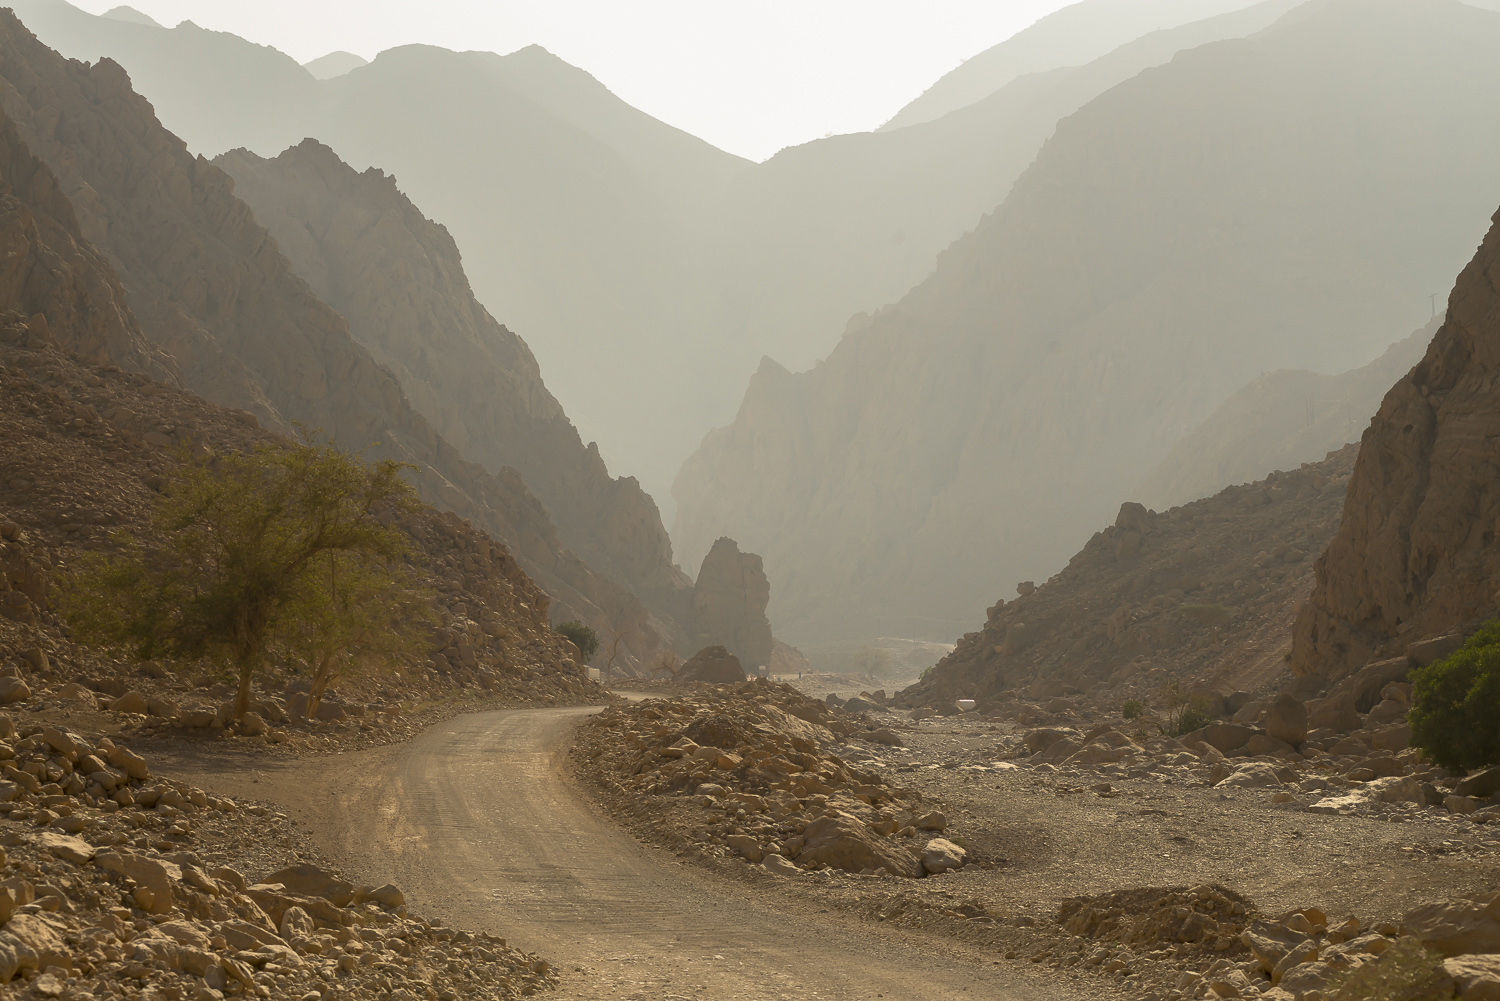 jo-kearney-video-photos-photography-travel-portraits-prints-for-sale-Oman-Musadam-peninsular-rocky-mountains-Dibba.jpg